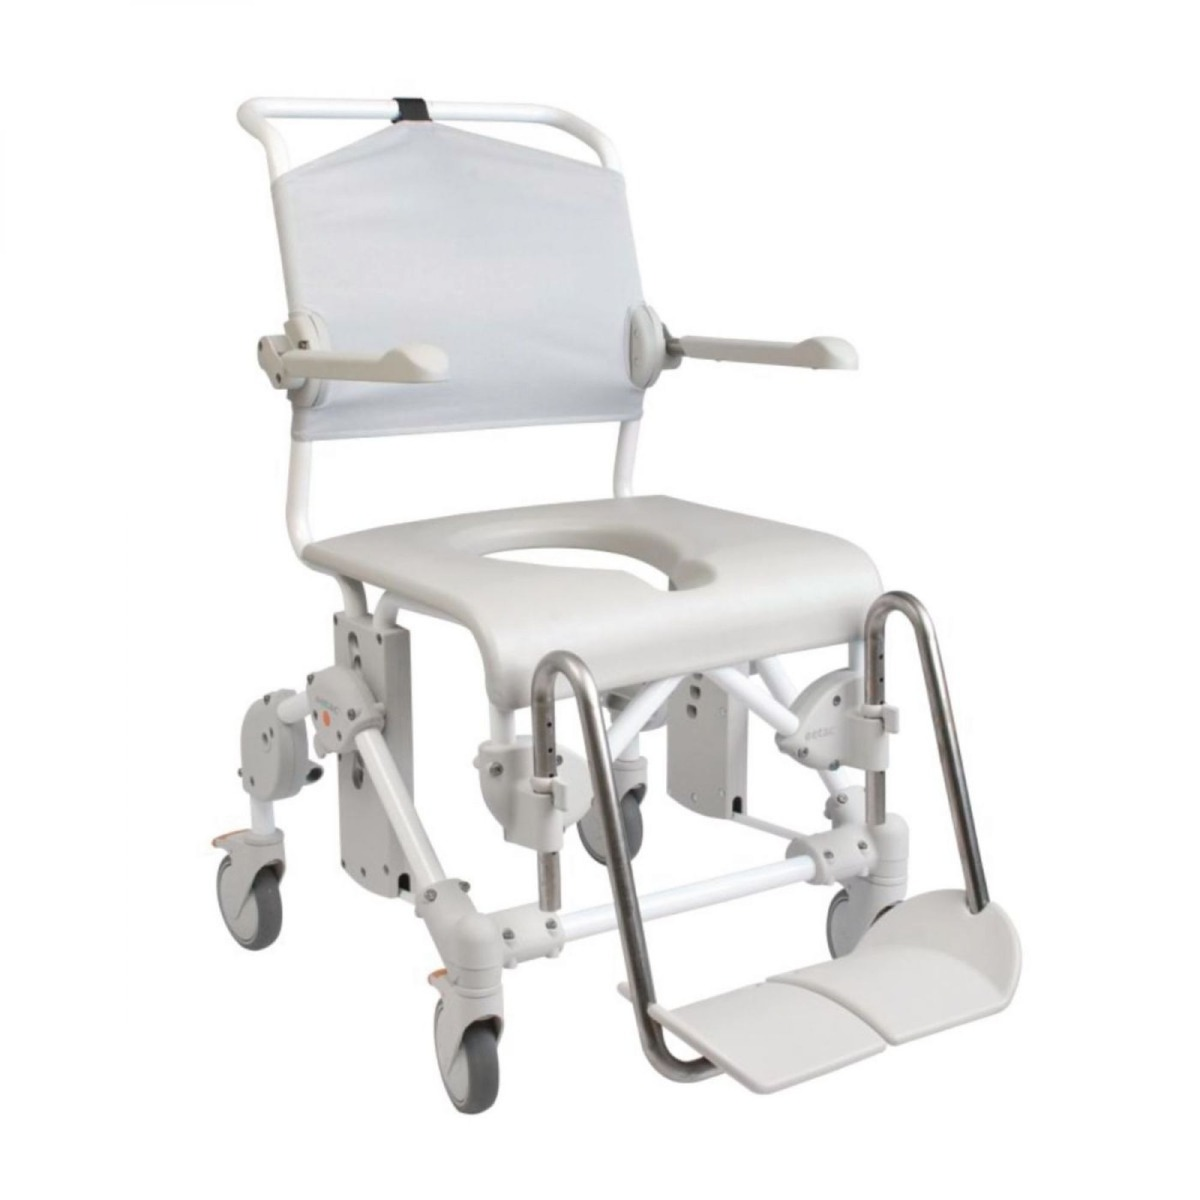 Shower Commode Chair